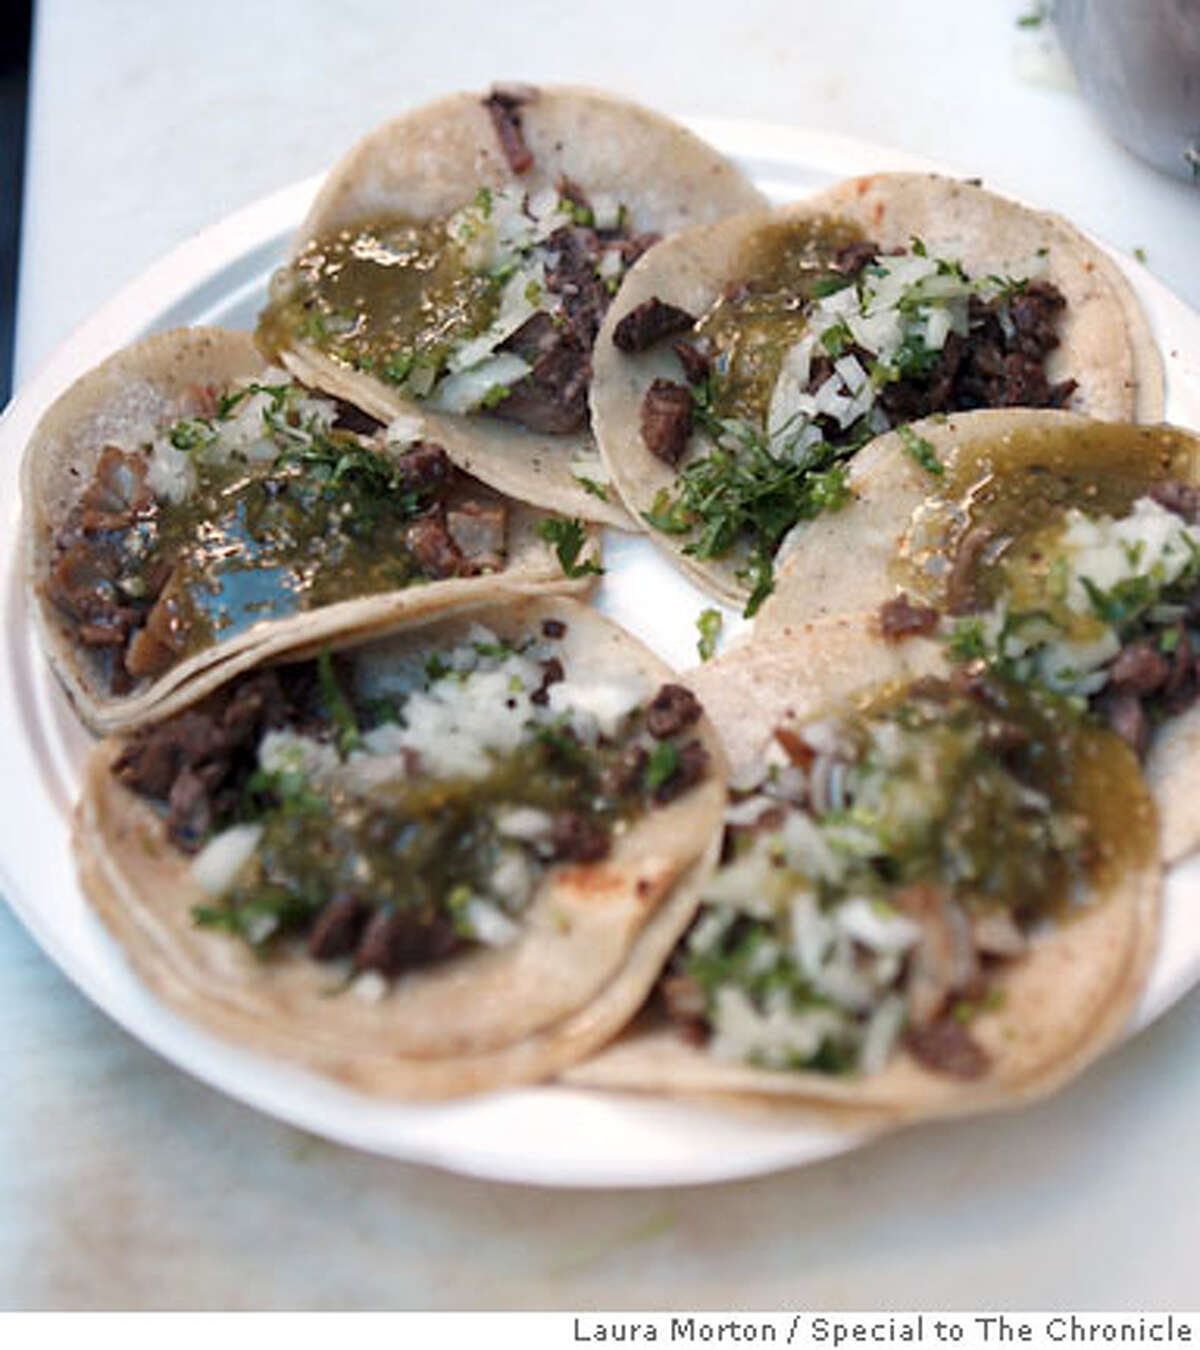 BARGAIN04_0180_LKM.jpg Tacos from the El Norteno taco truck, which parks in a lot off Bryant St. between 6th and 7th Streets in San Francisco. (Laura Morton/Special to the Chronicle)